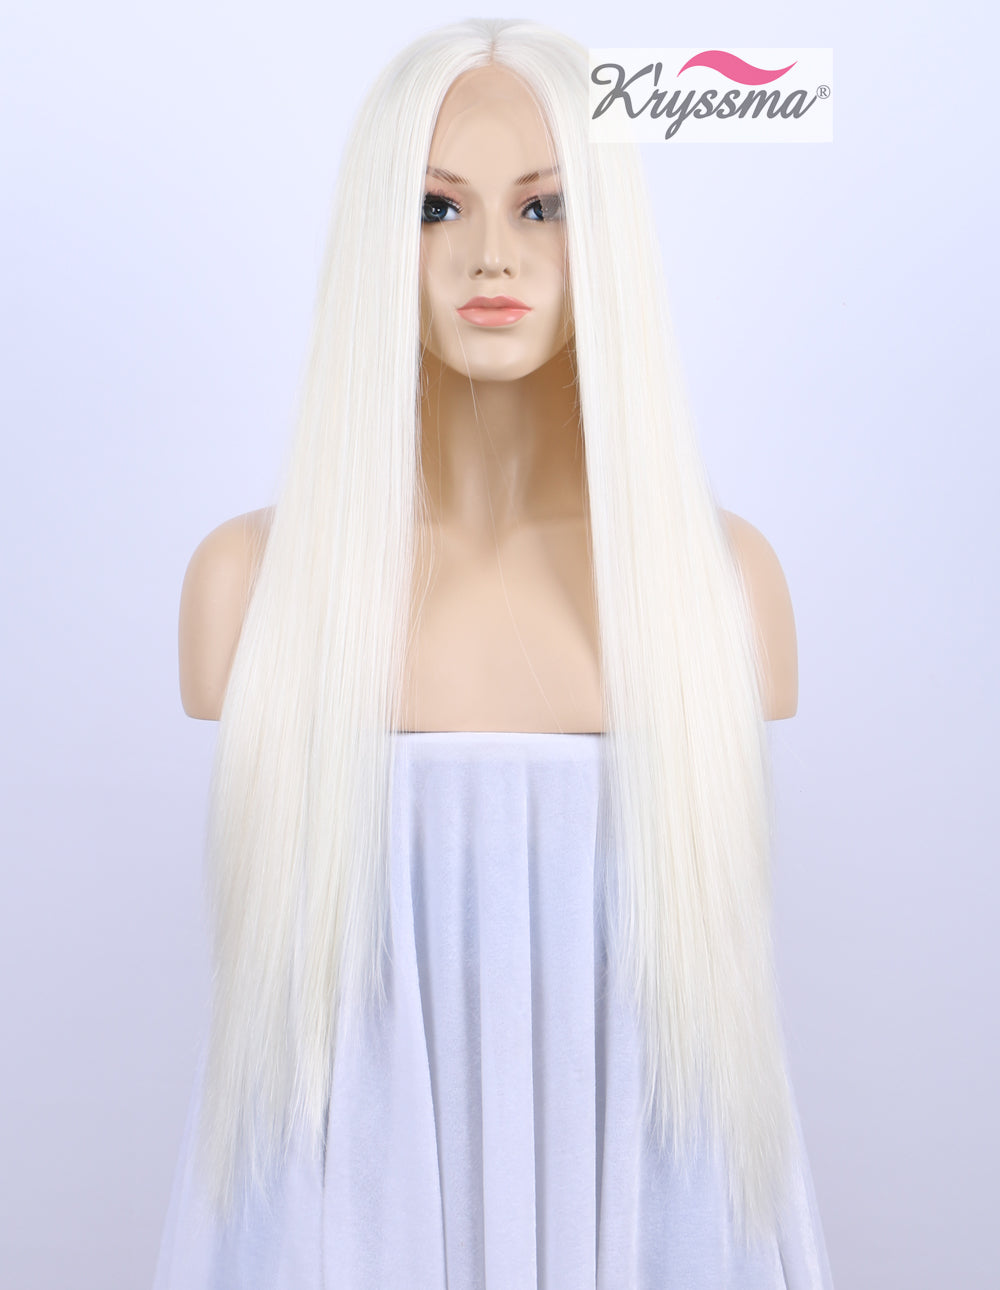 ... K ryssma Chirstmas Platinum Blonde Synthetic Hair Lace Front Wigs For  White Women Silk Straight ... 915785bdc27d